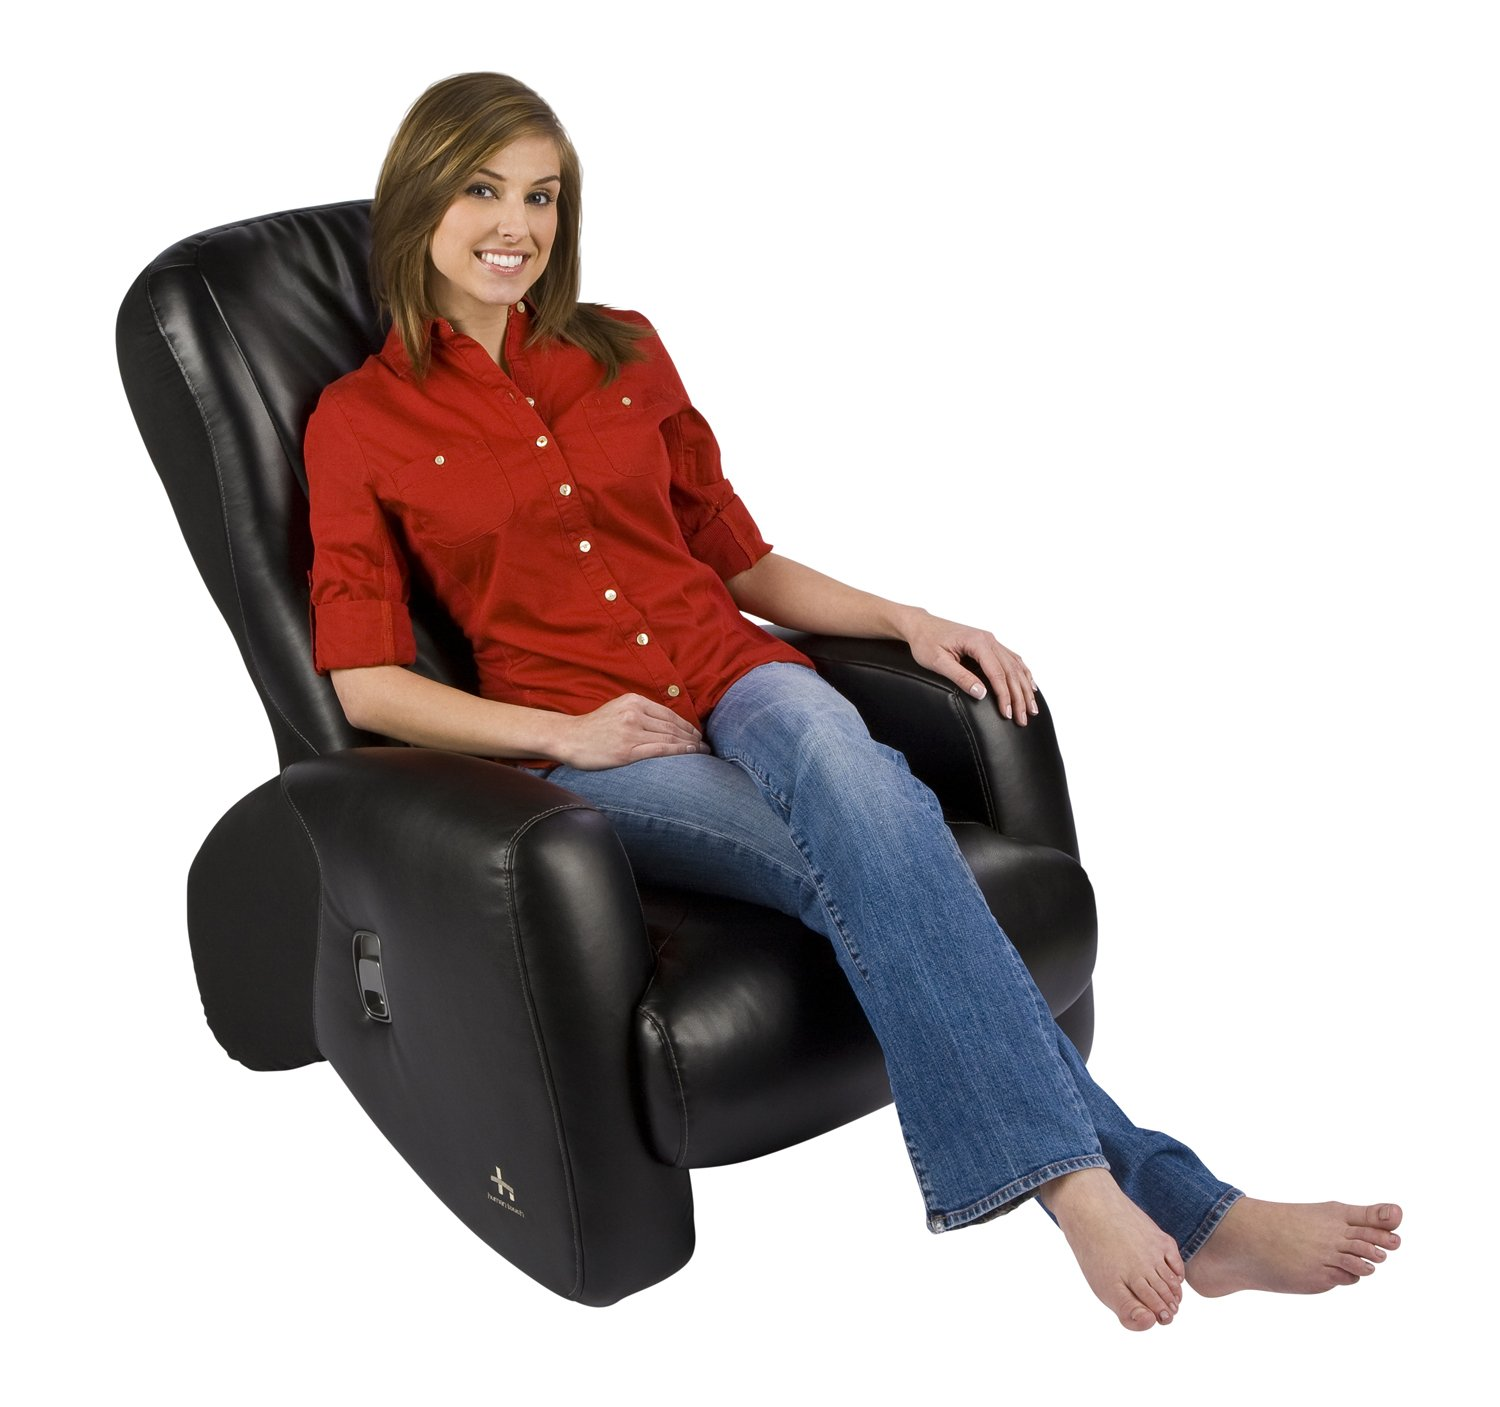 "Amazon ""iJoy 2310"" Recline & Relax Robotic Massage Chair"